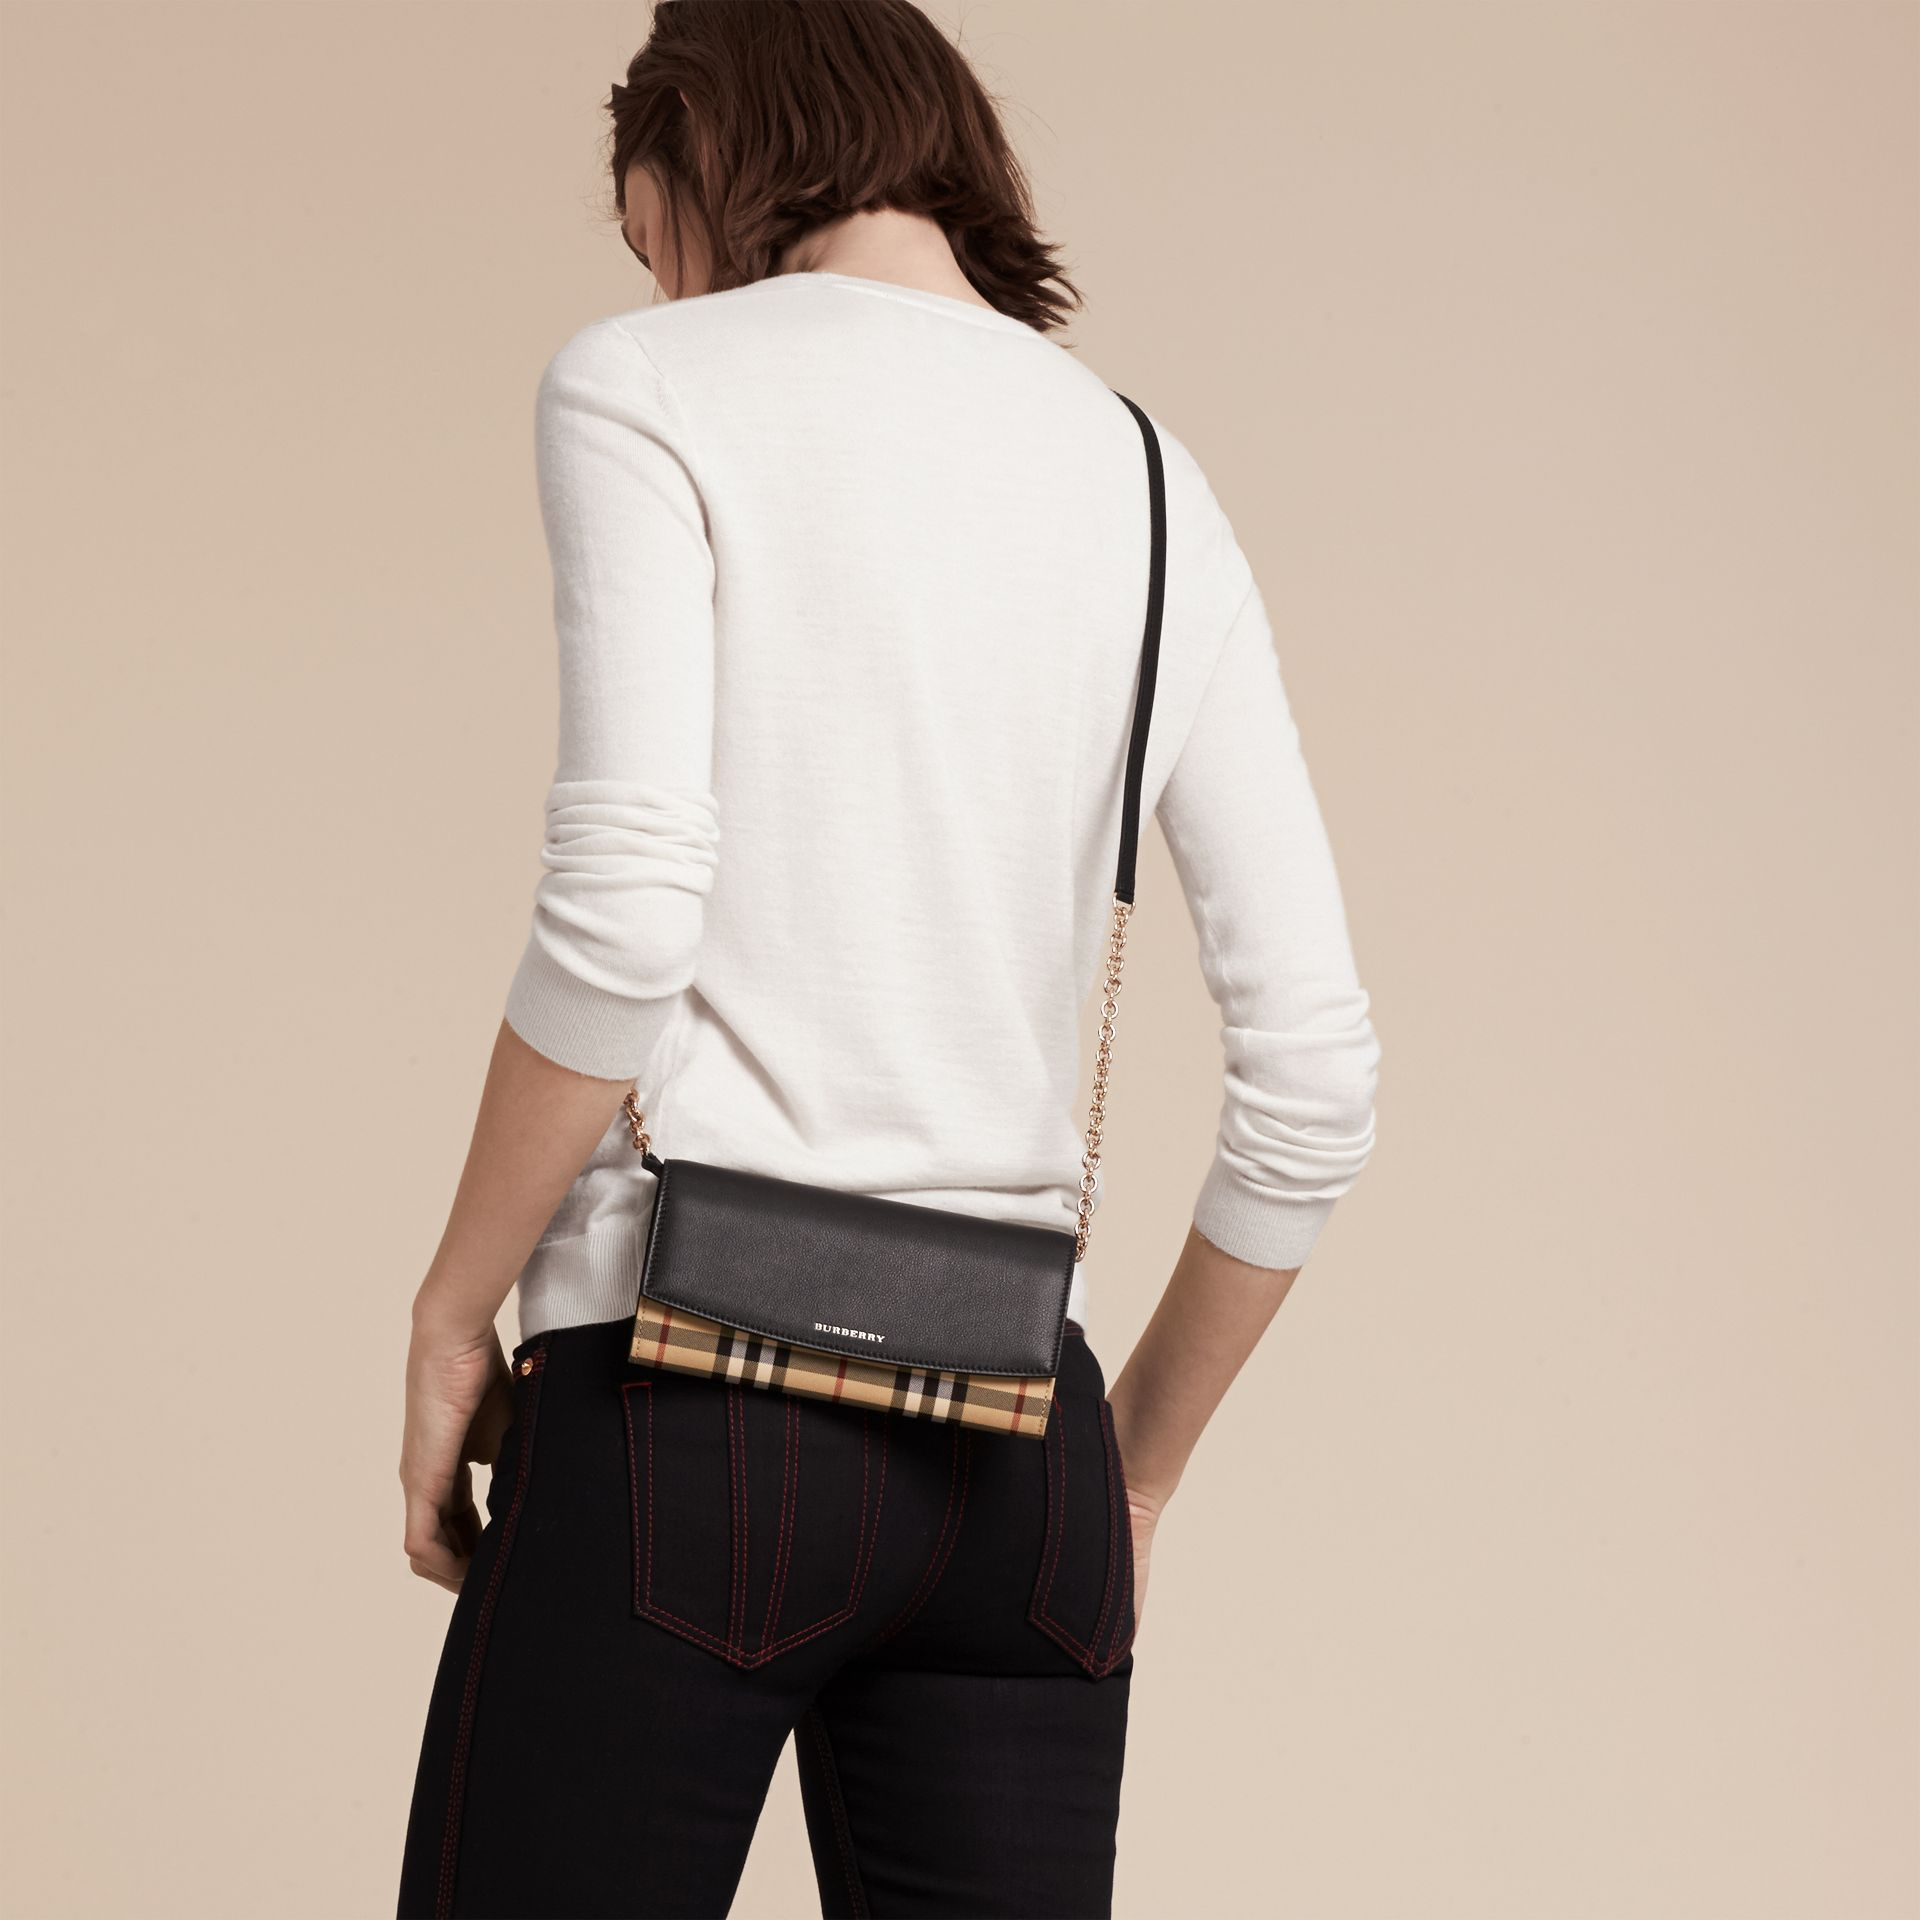 Horseferry Check and Leather Wallet with Chain in Black - Women | Burberry - gallery image 3